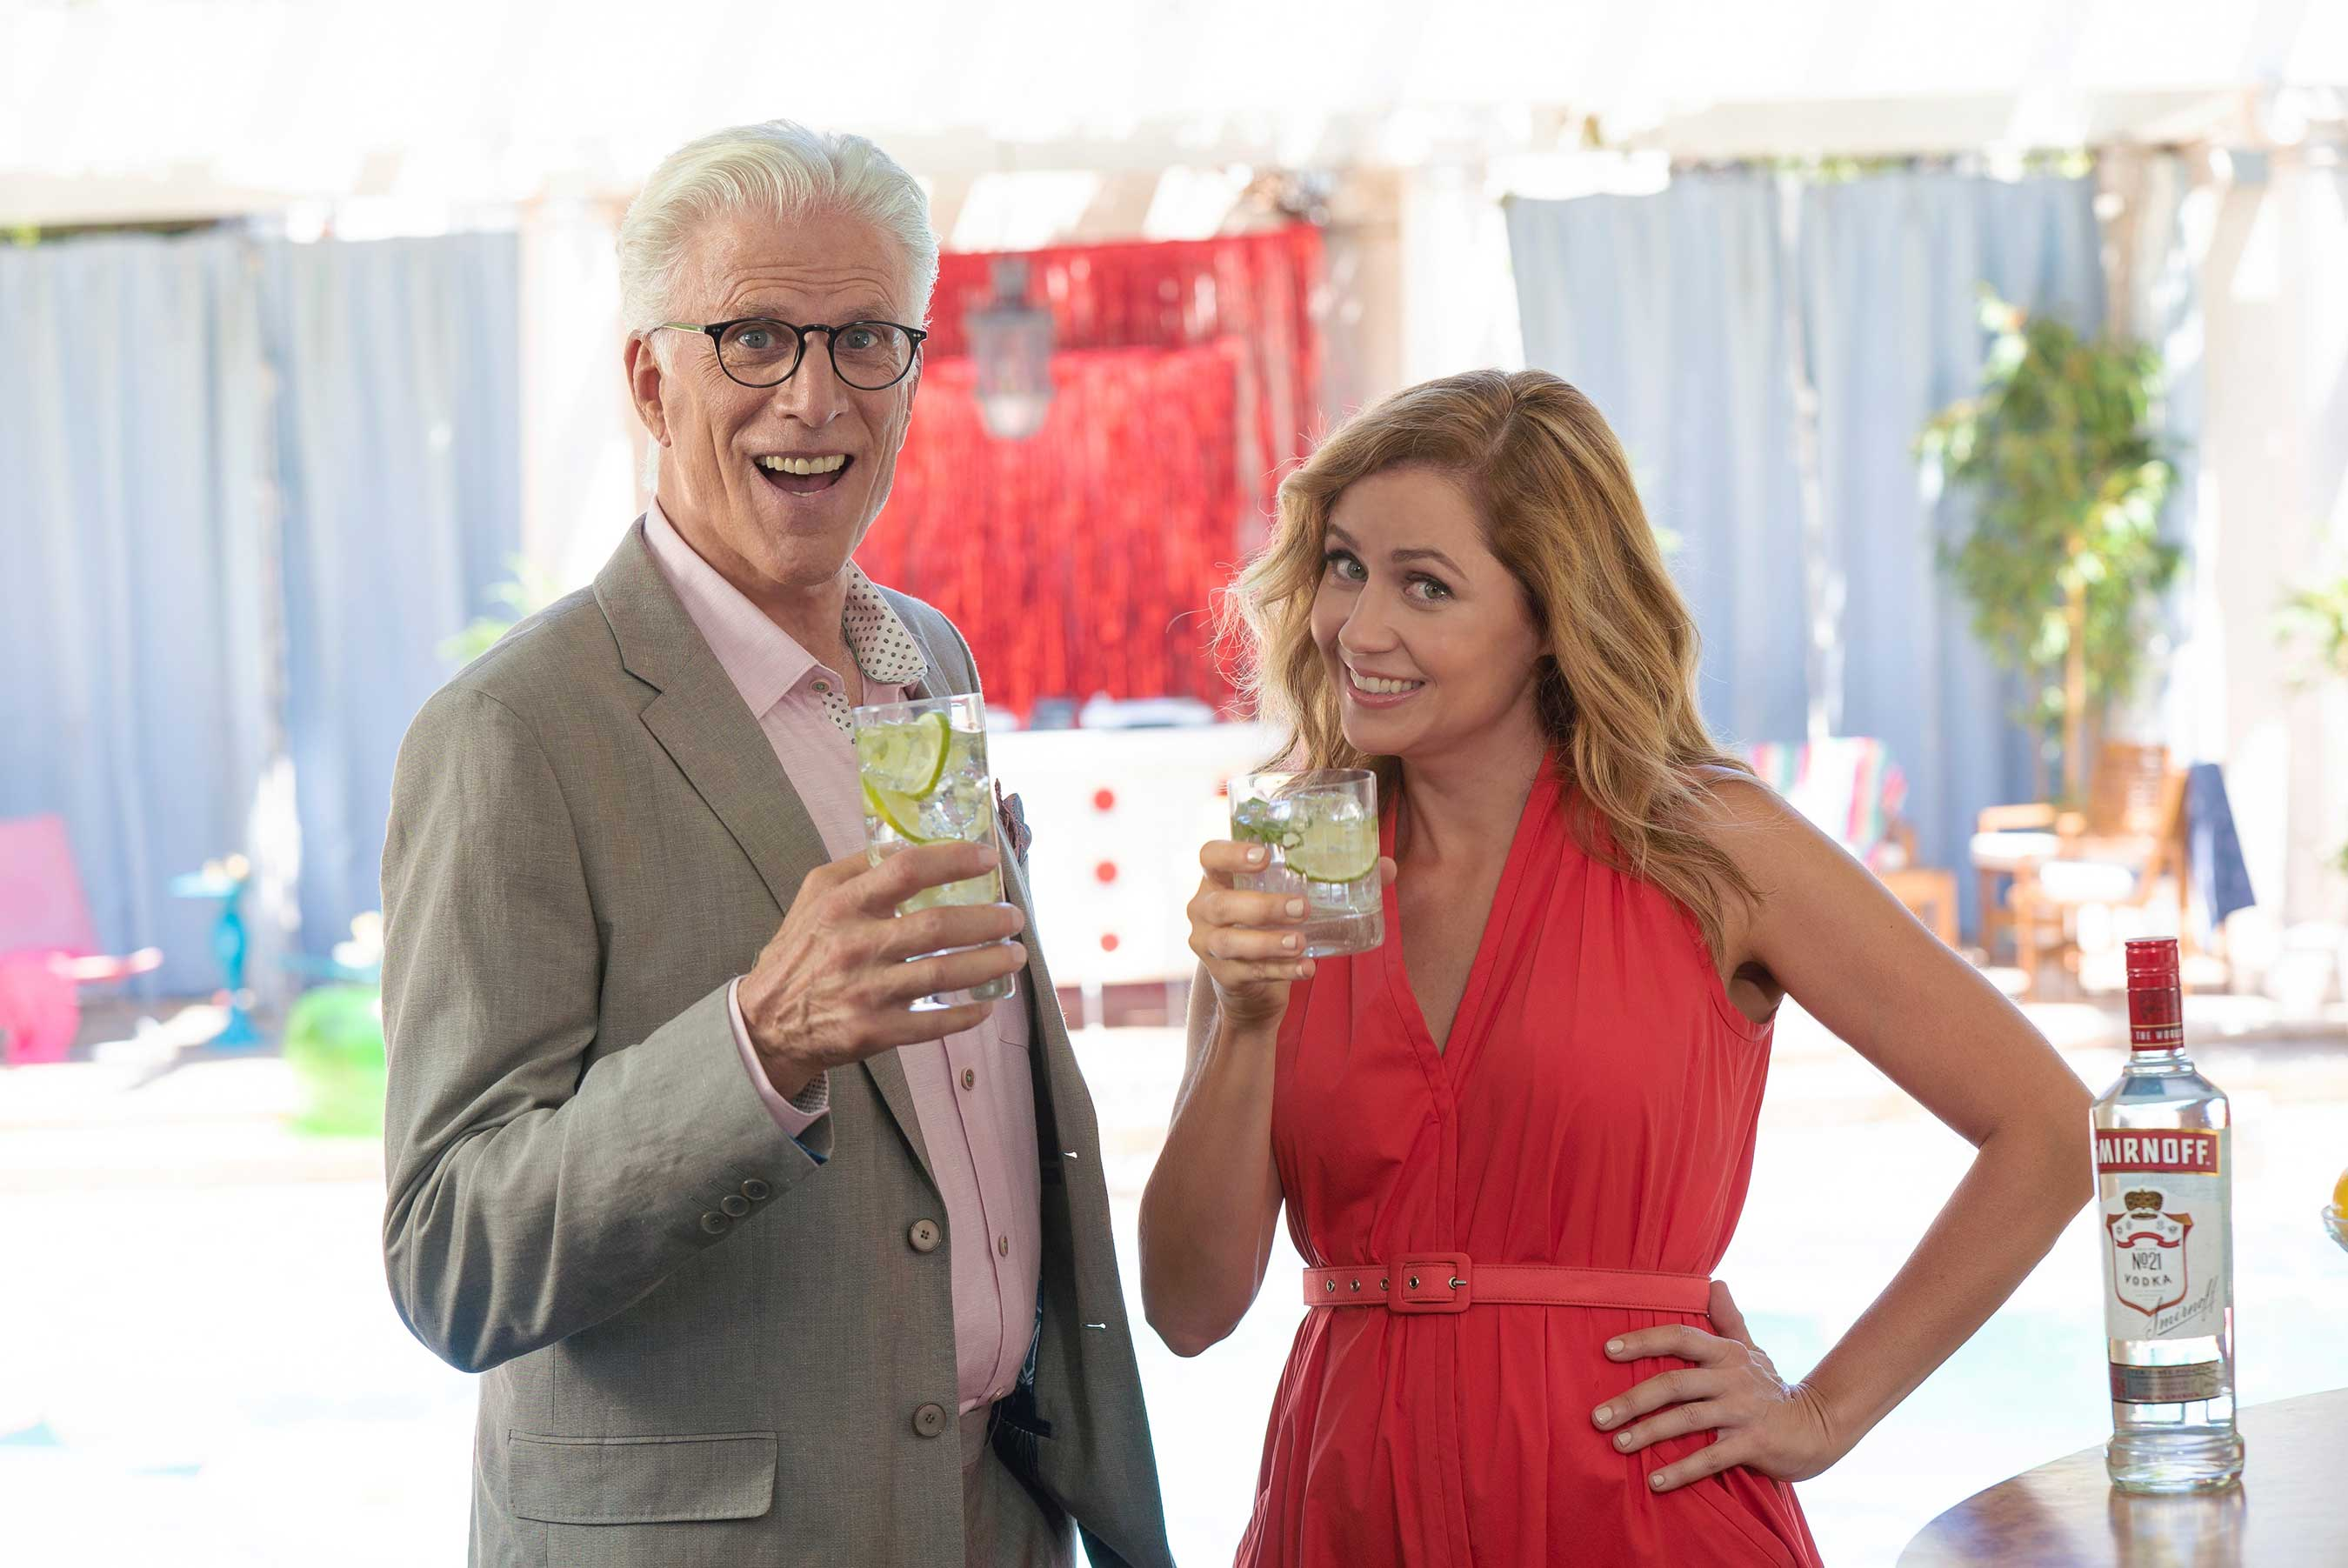 Ted Danson and Jenna Fischer announce that Smirnoff No. 21 is now non-GMO.